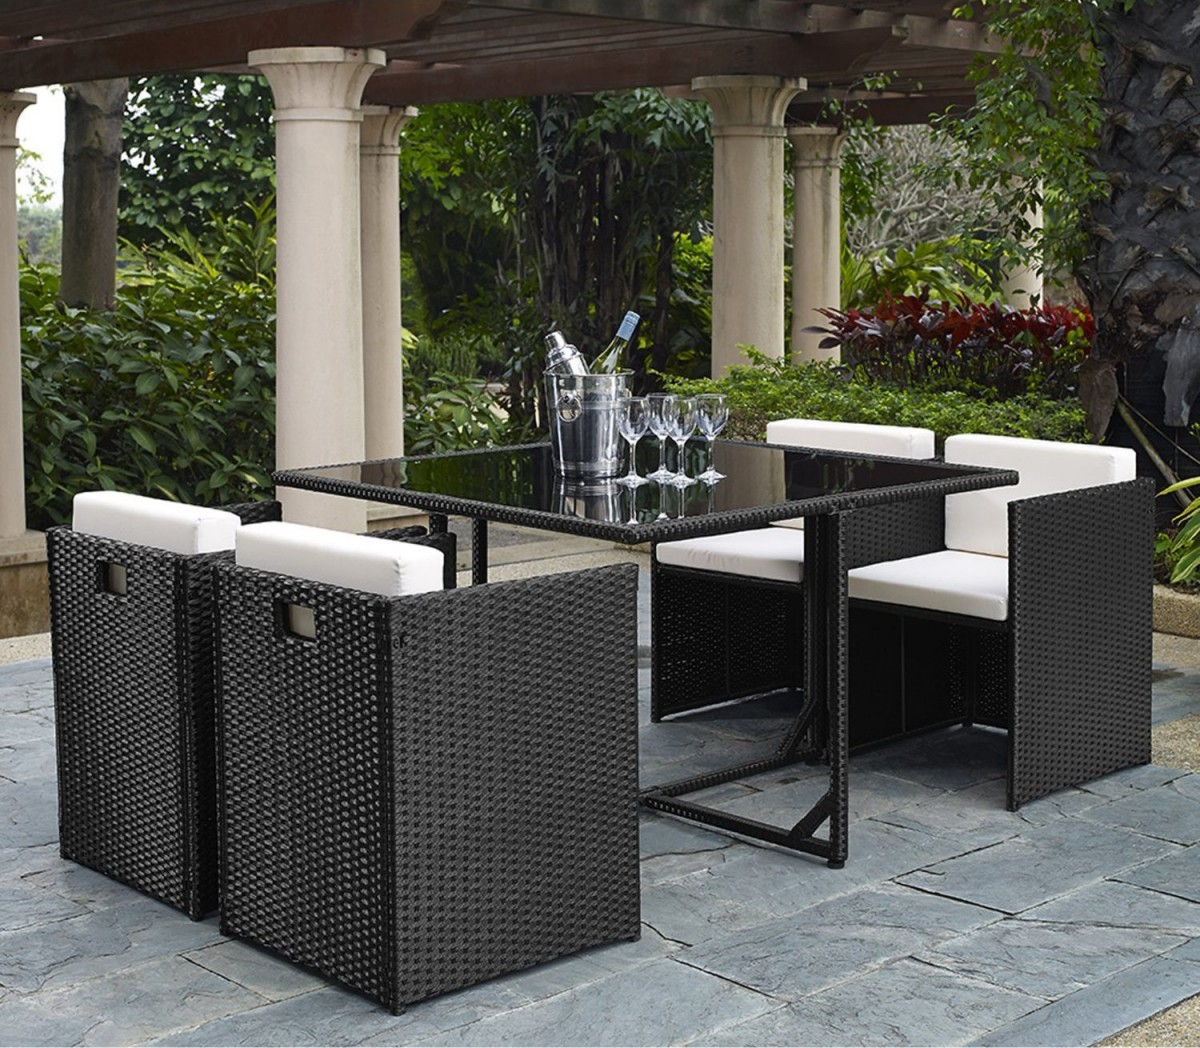 5 piece rattan cube garden furniture set w stowaway chairs for Rattan outdoor furniture